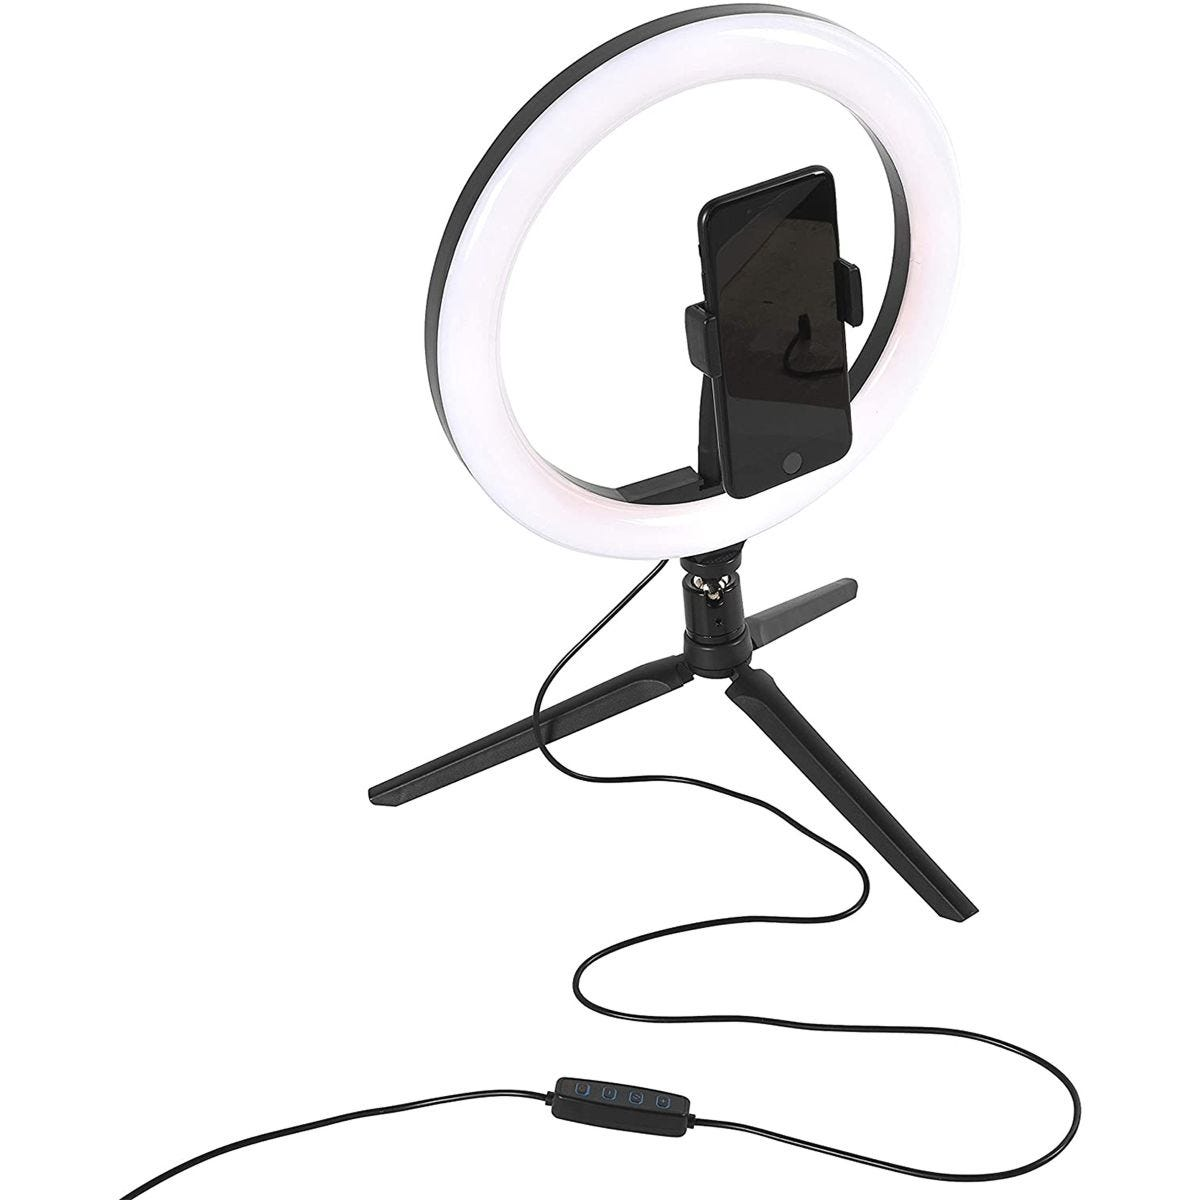 Intempo Sync Desktop Selfie Light Ring Stand with Phone Holder - 26 cm, 3 Light Modes & USB Powered